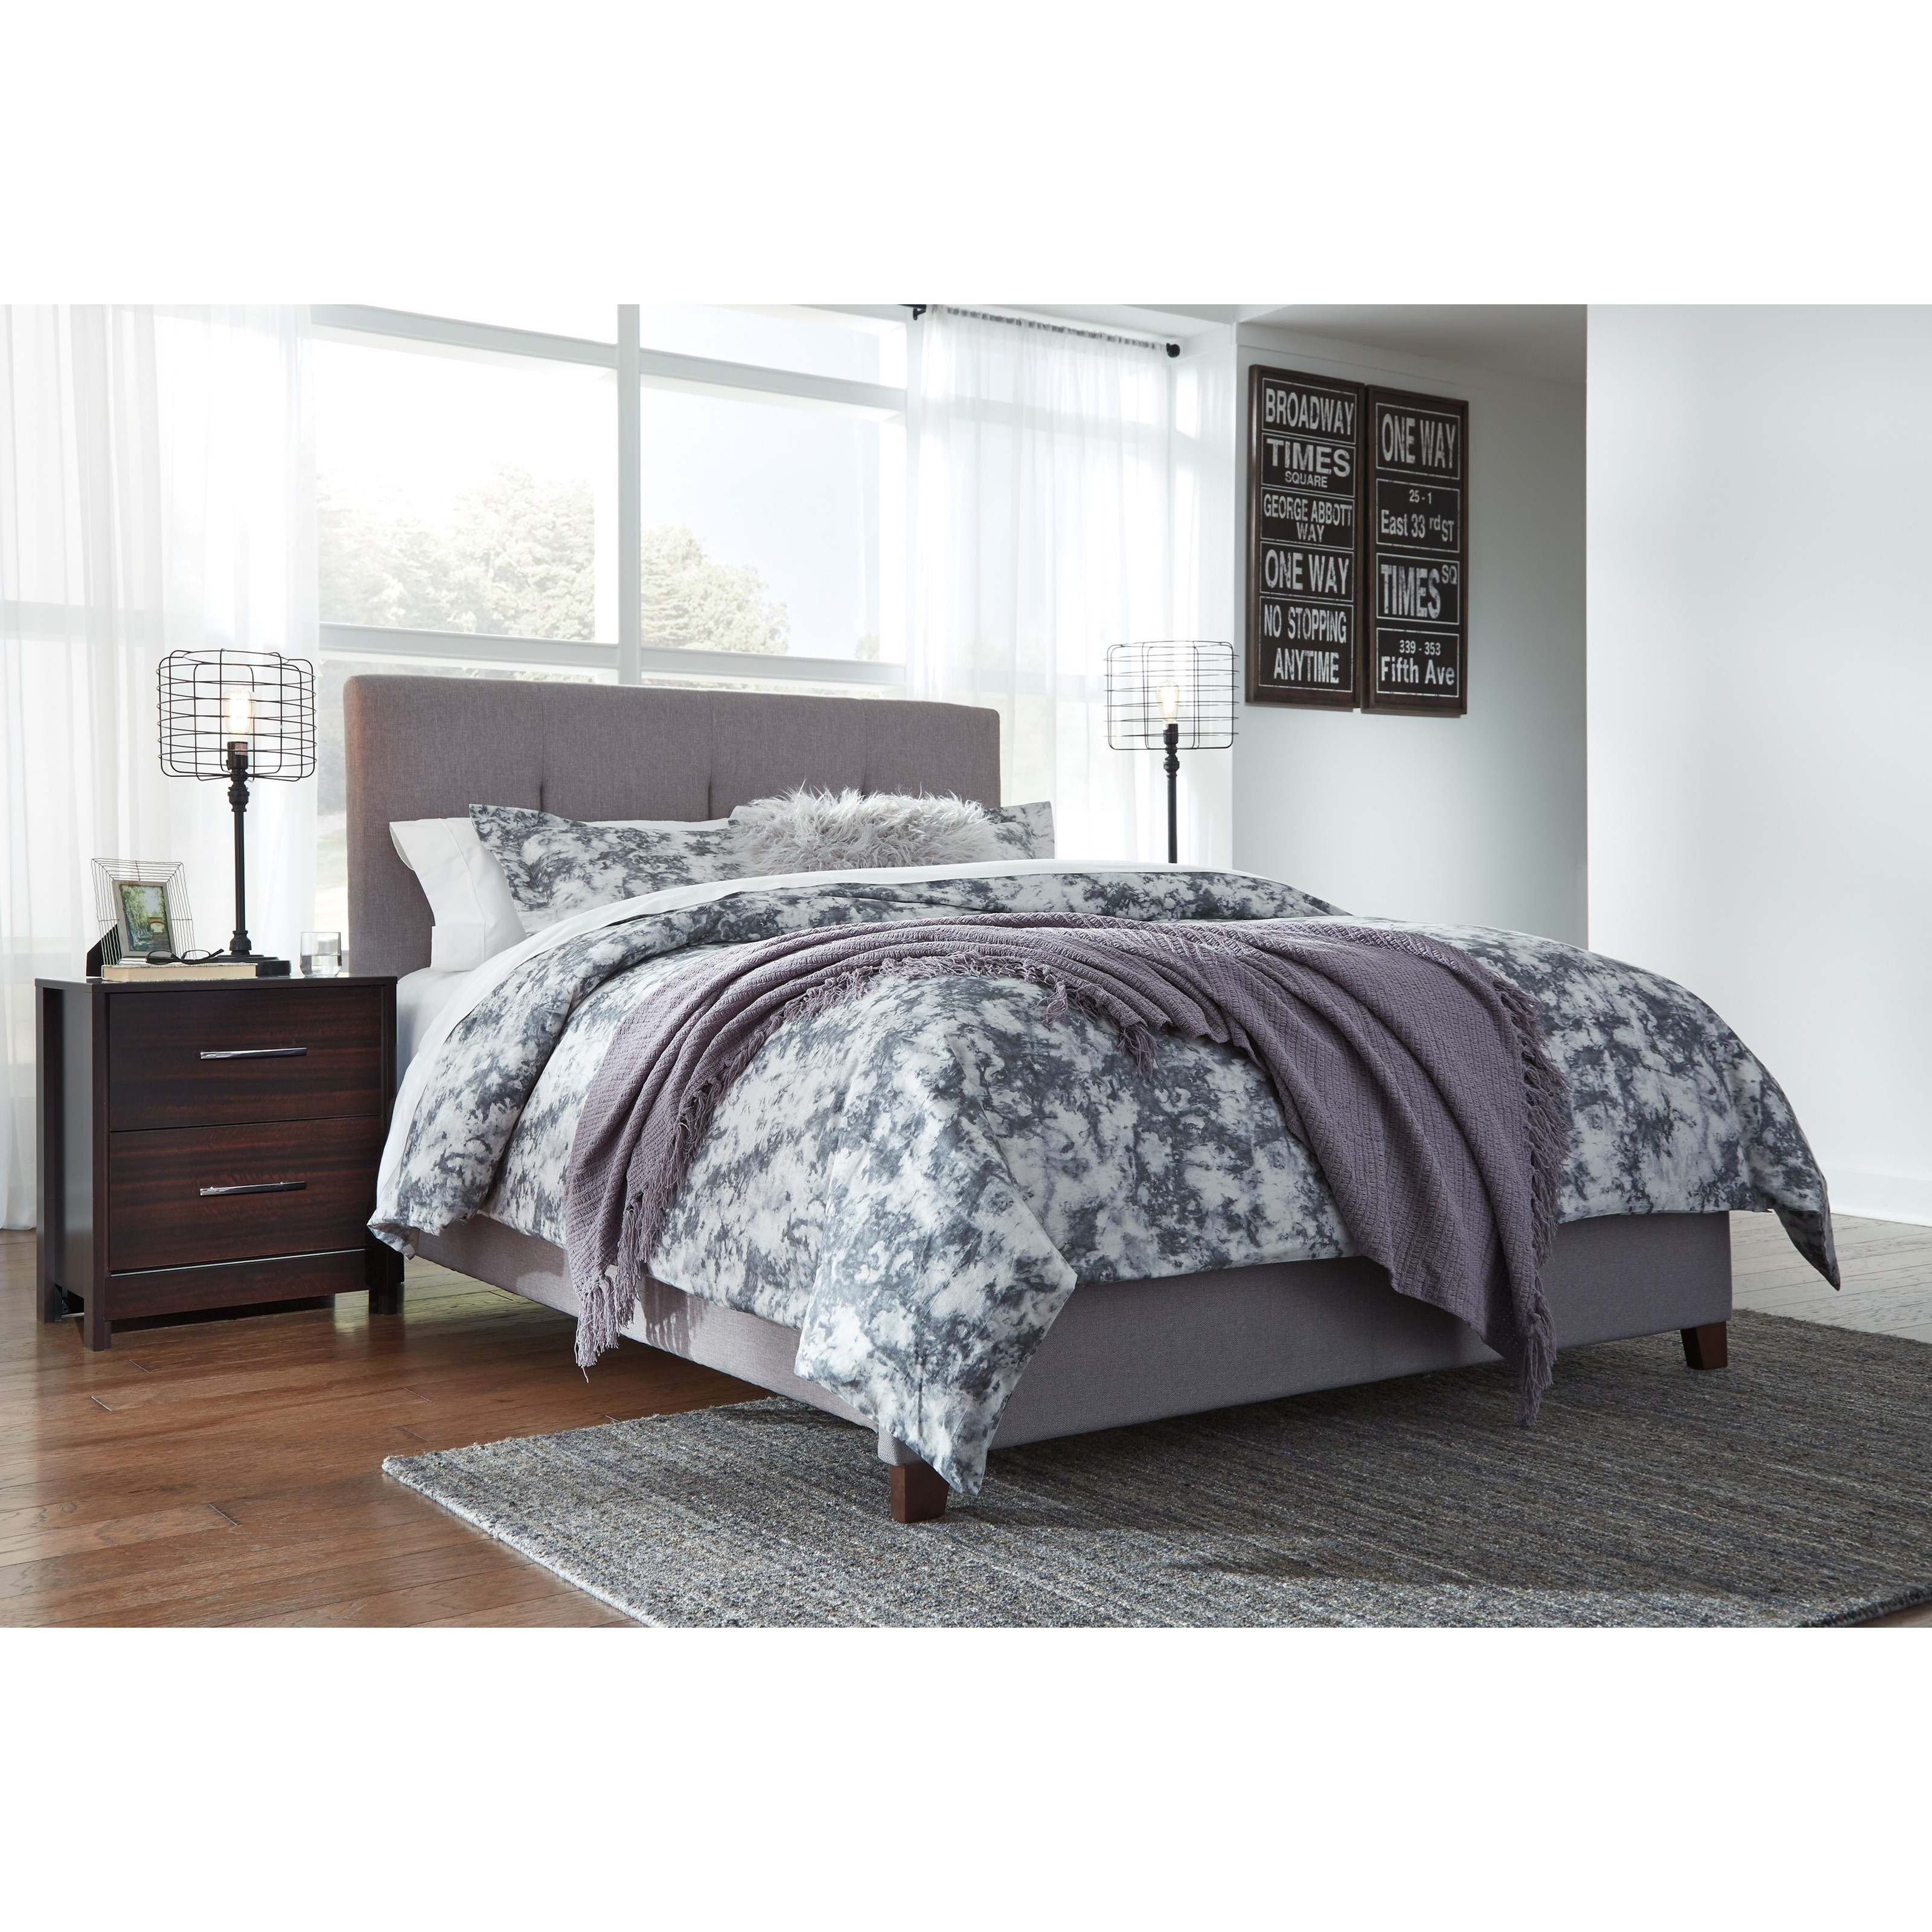 Ashley Signature Design Contemporary Upholstered Beds Queen Upholstered Bed With Channel Tufting